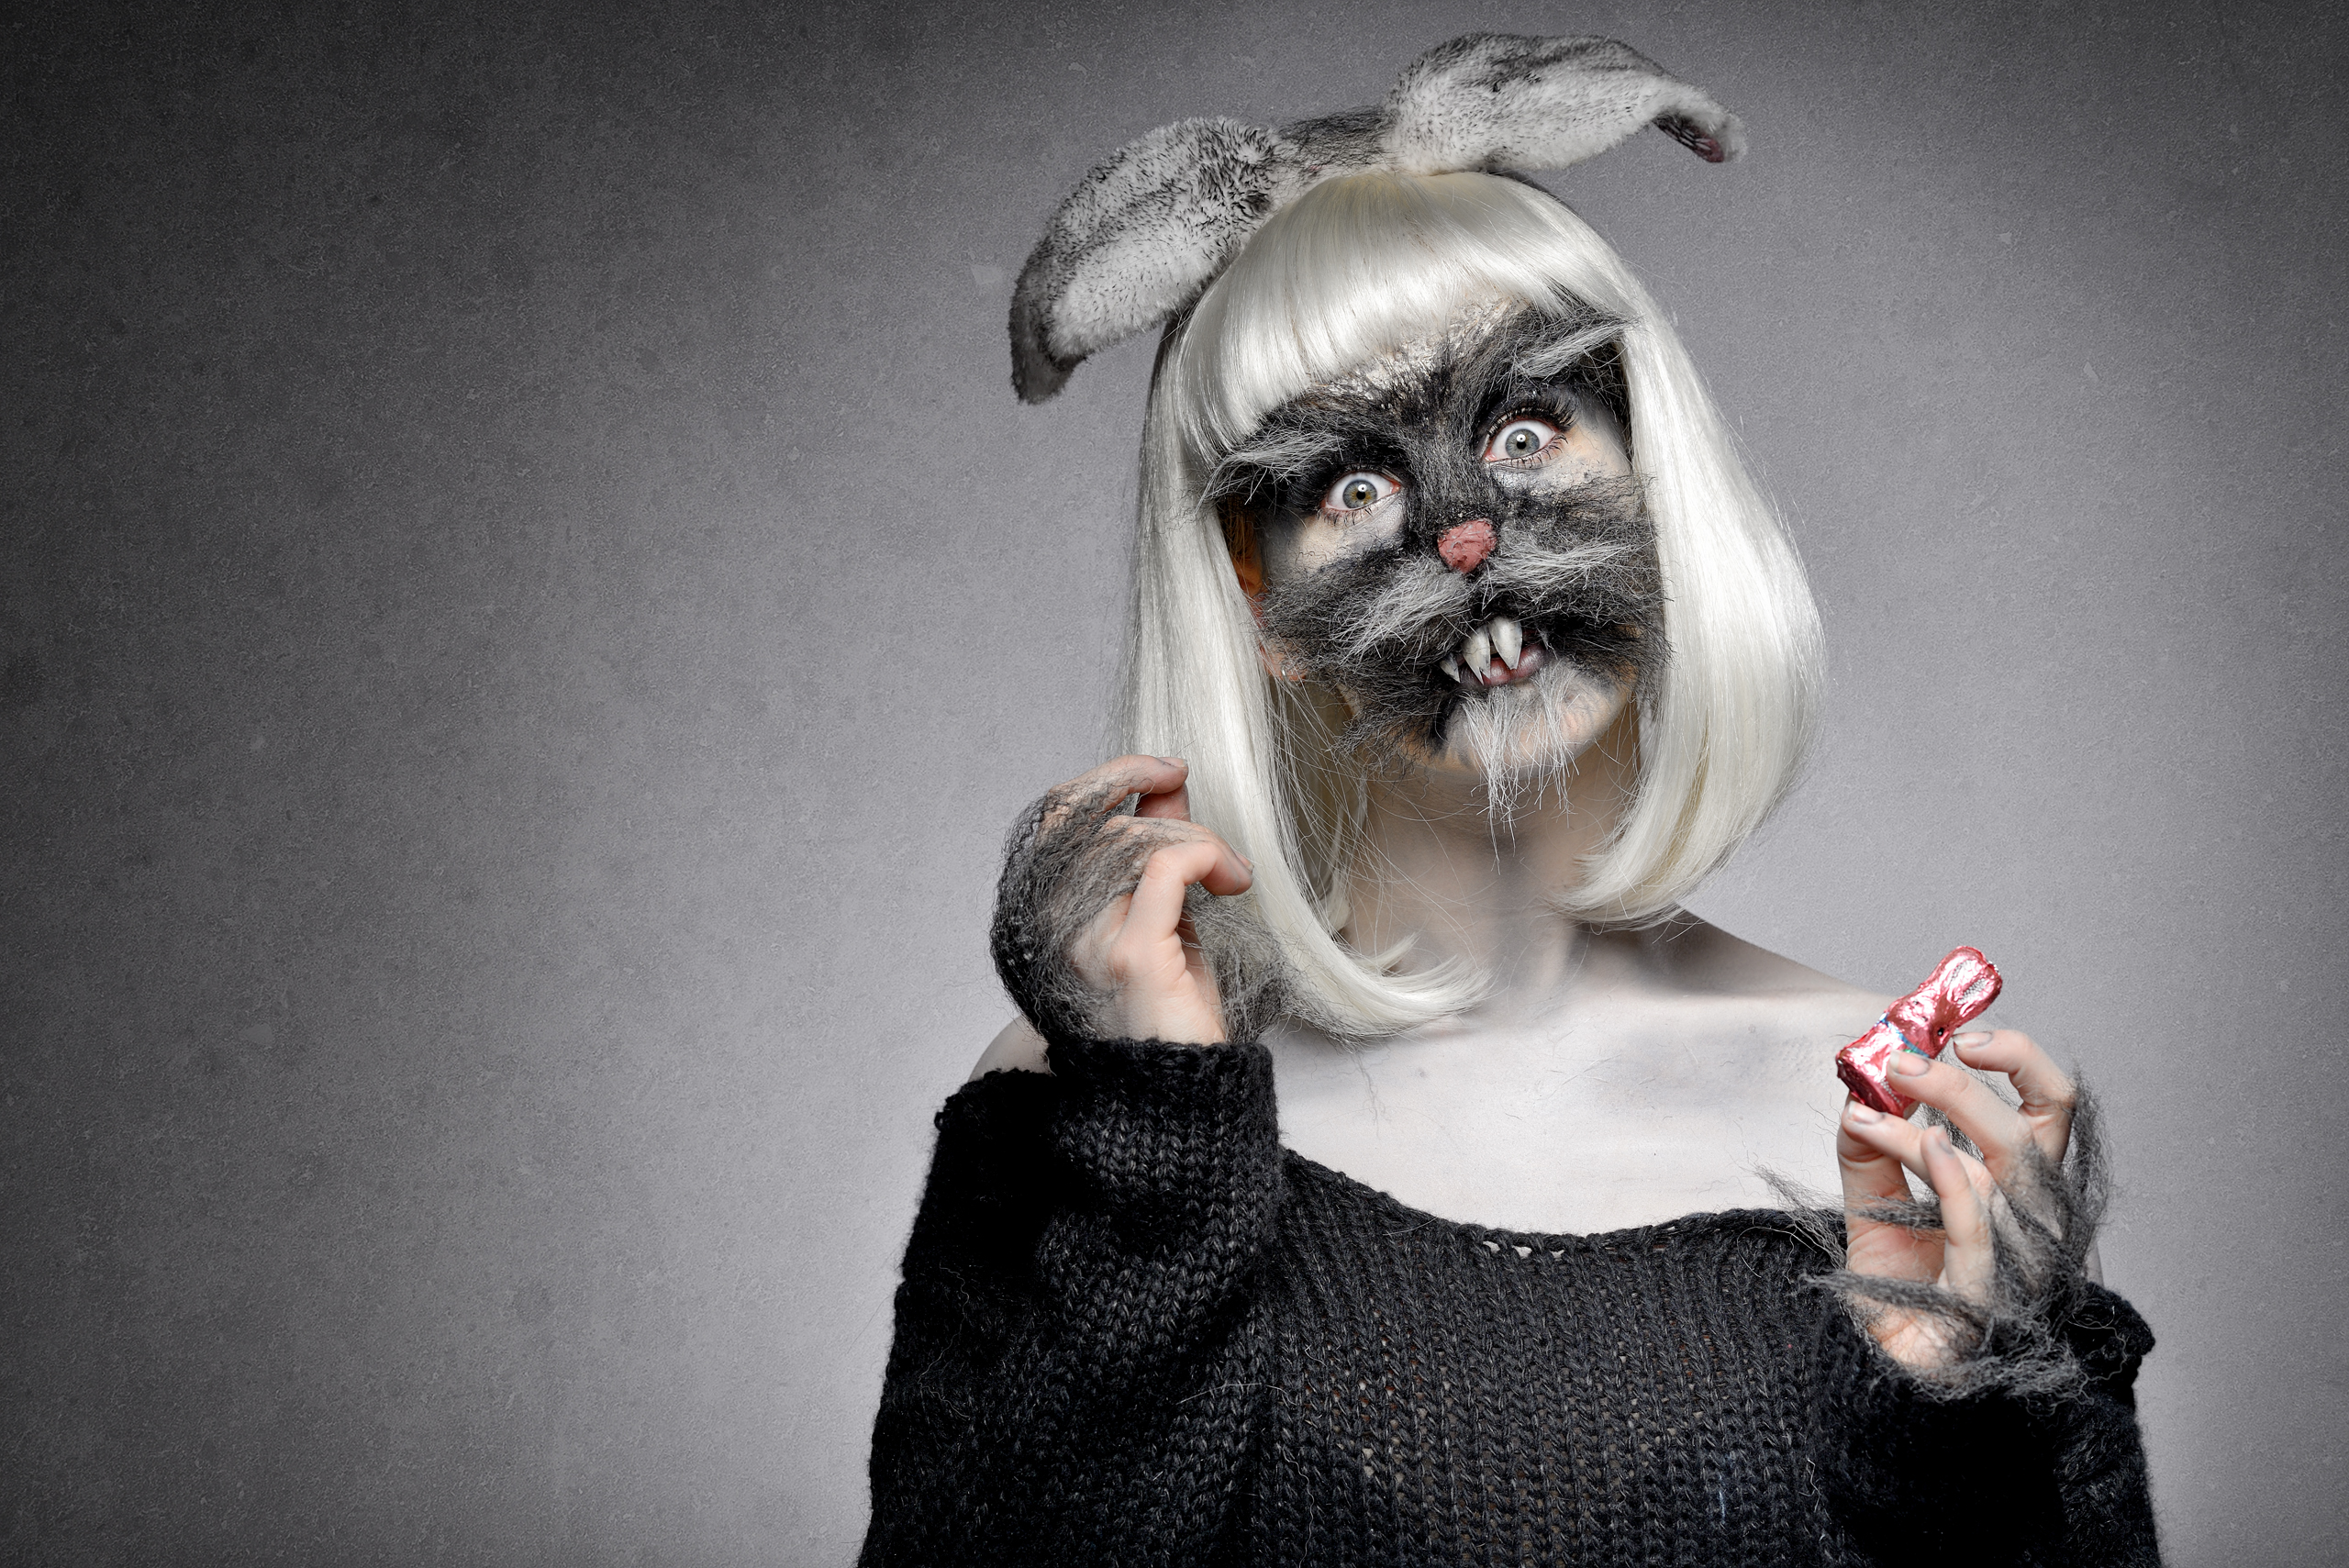 Freaky bunny halloween makeup tutorial by Ellimacs